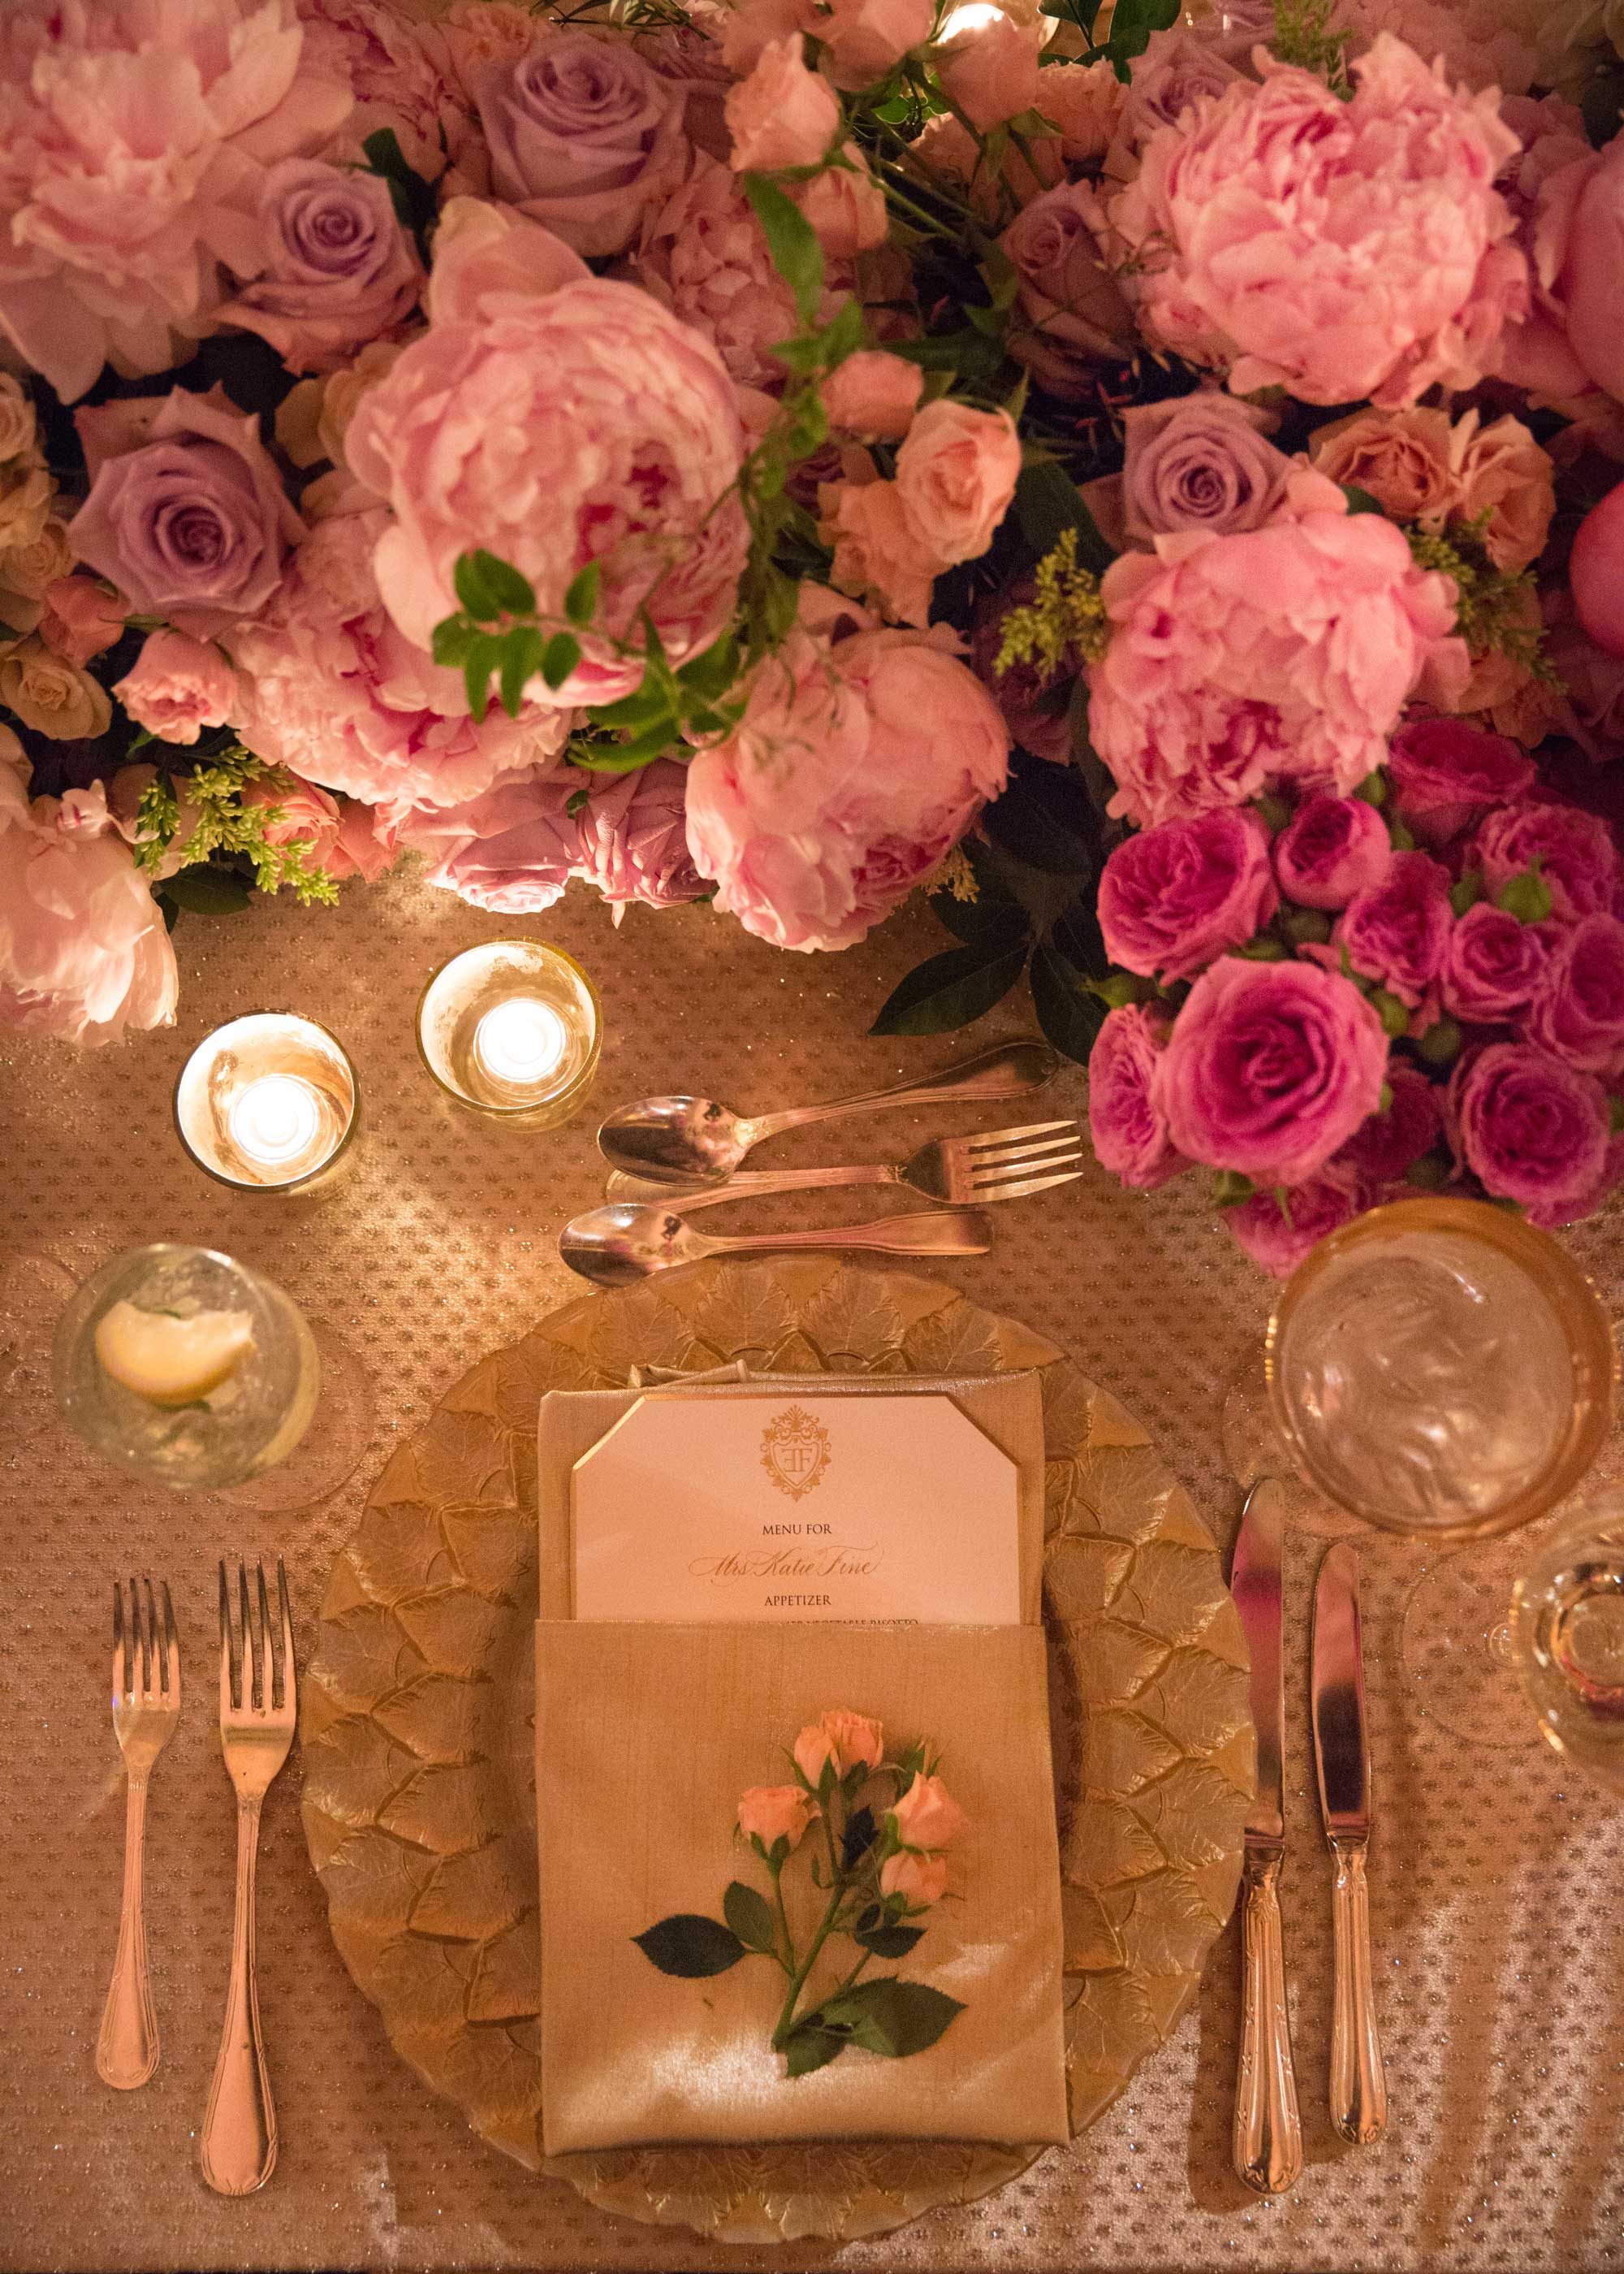 Inside Weddings Spring 2017 issue place setting at wedding nuage designs linens and bright pink flowers